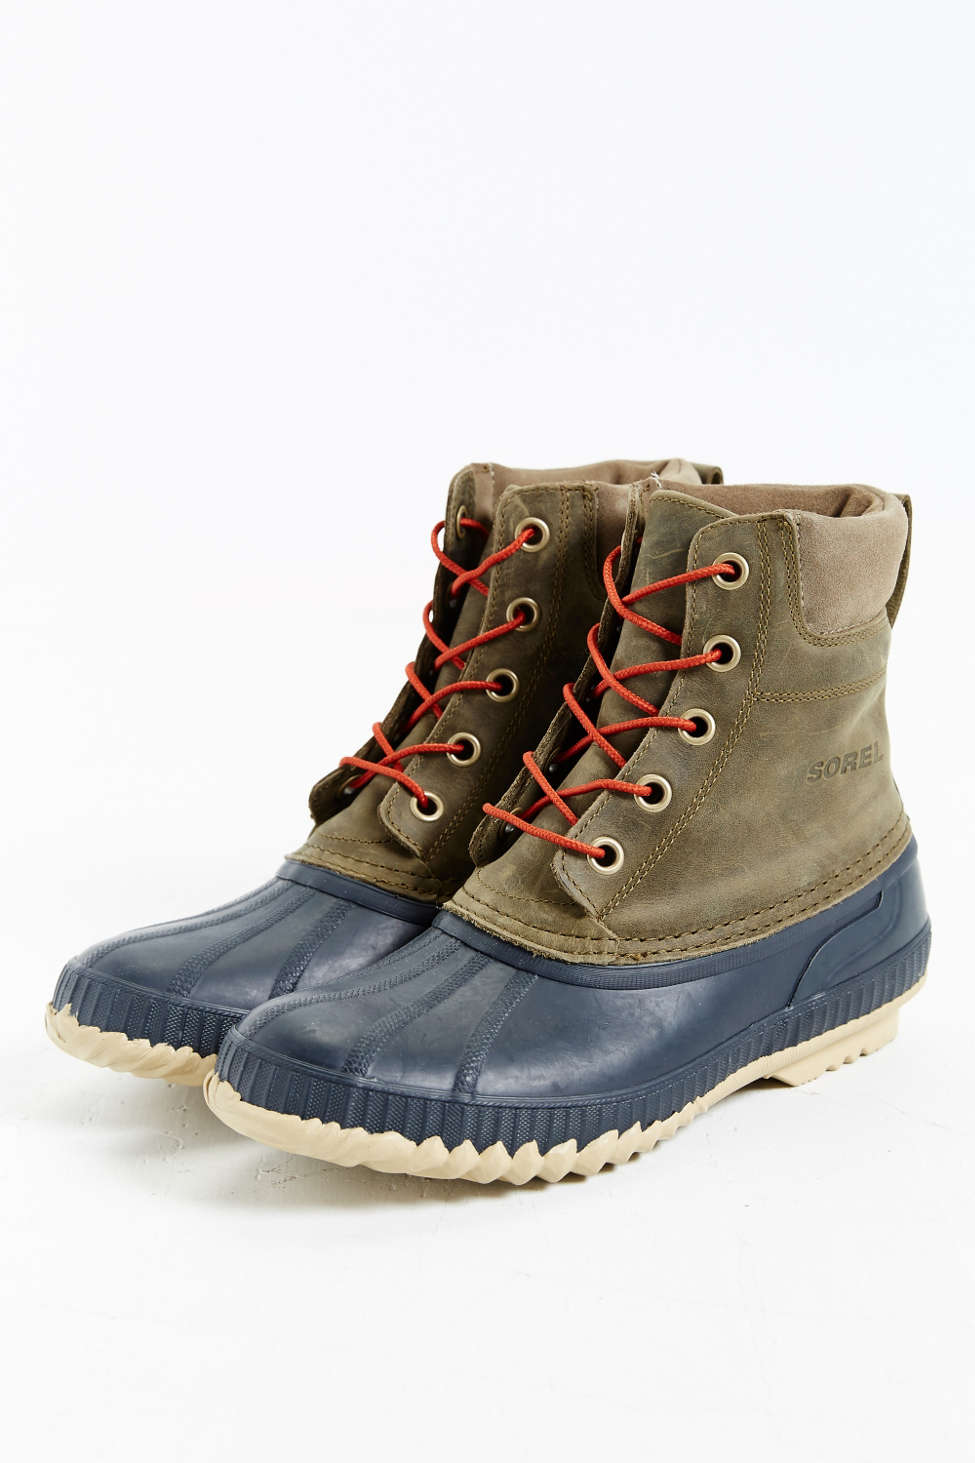 Sorel Suede Duck Boots for Him